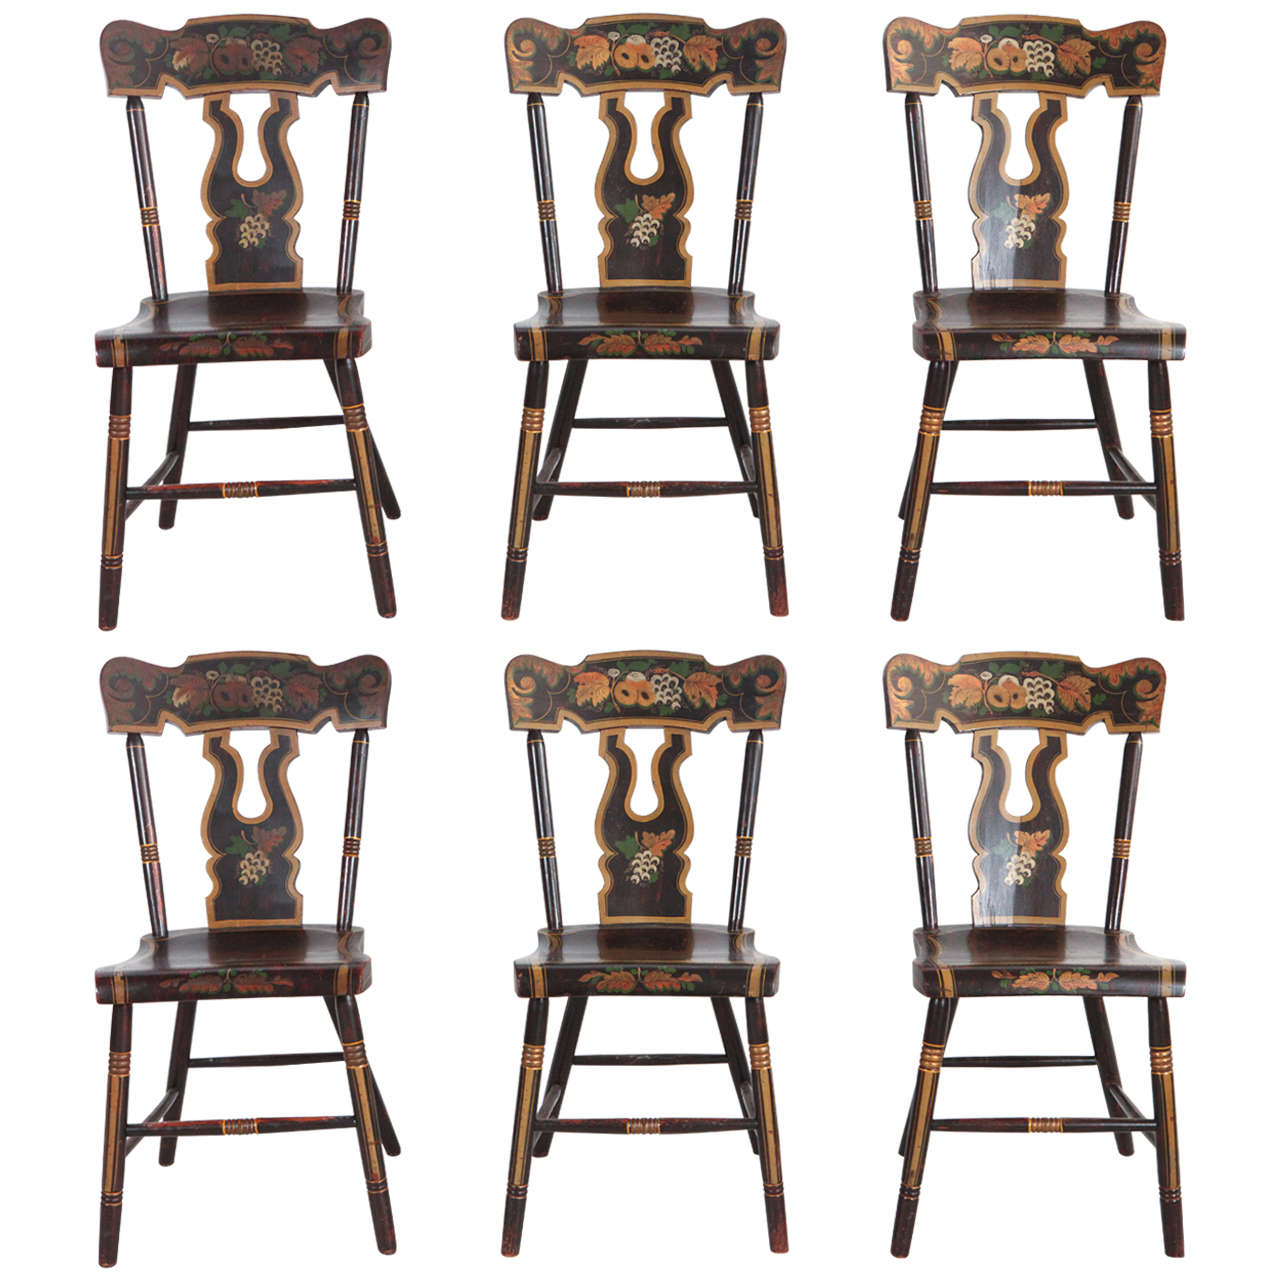 Four French Hand Painted Chairs Sold Individually